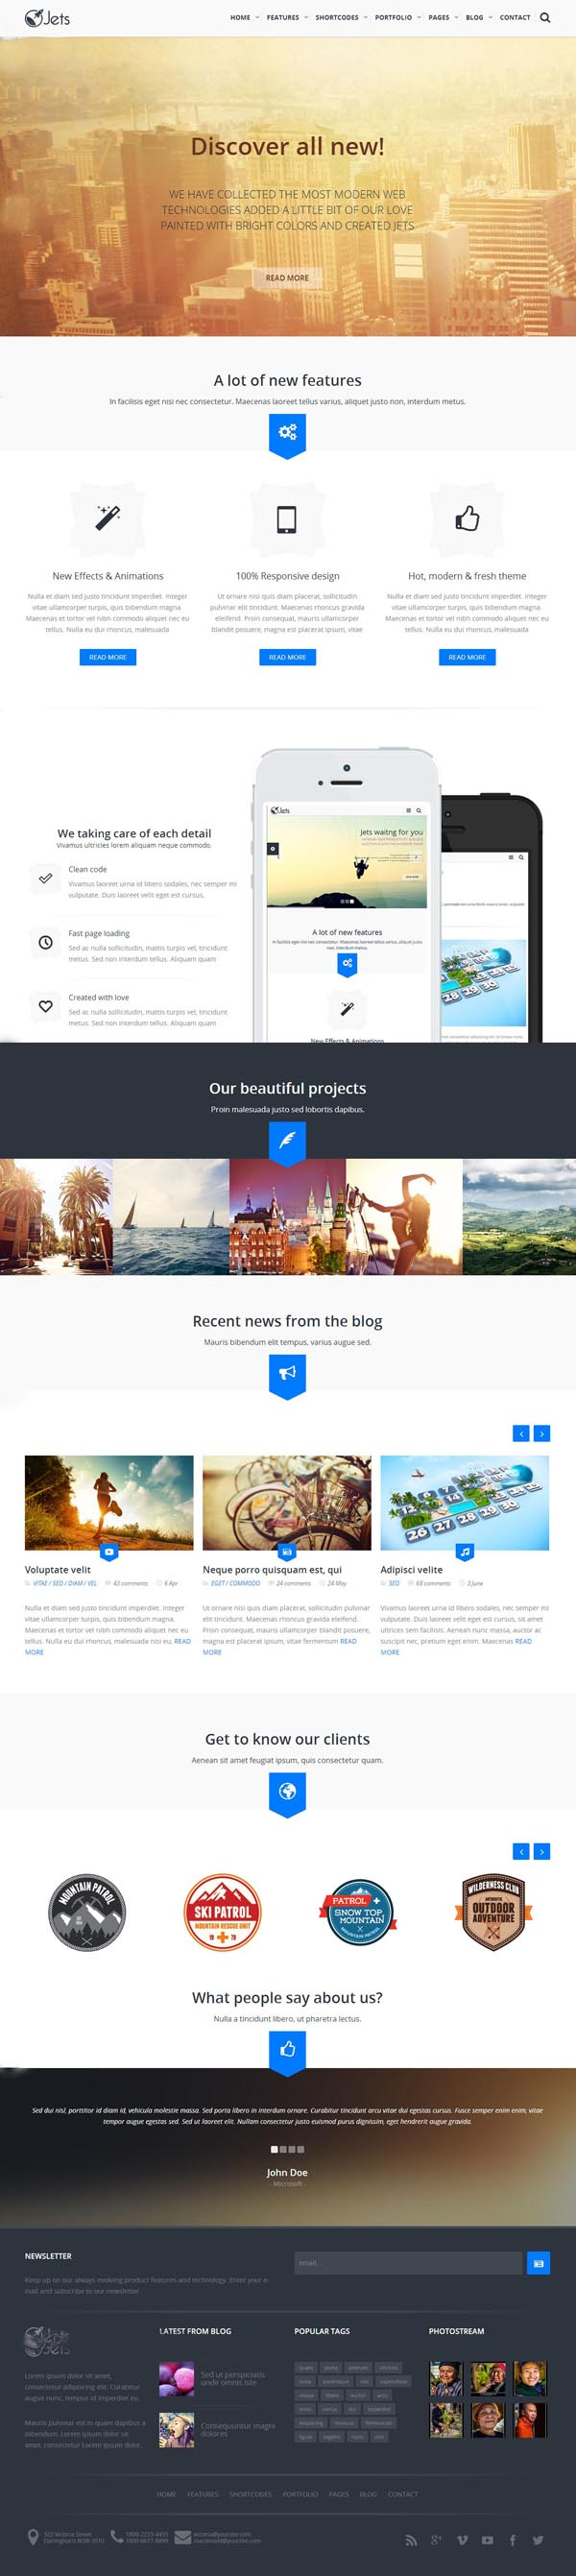 Jets - Responsive HTML5 Template